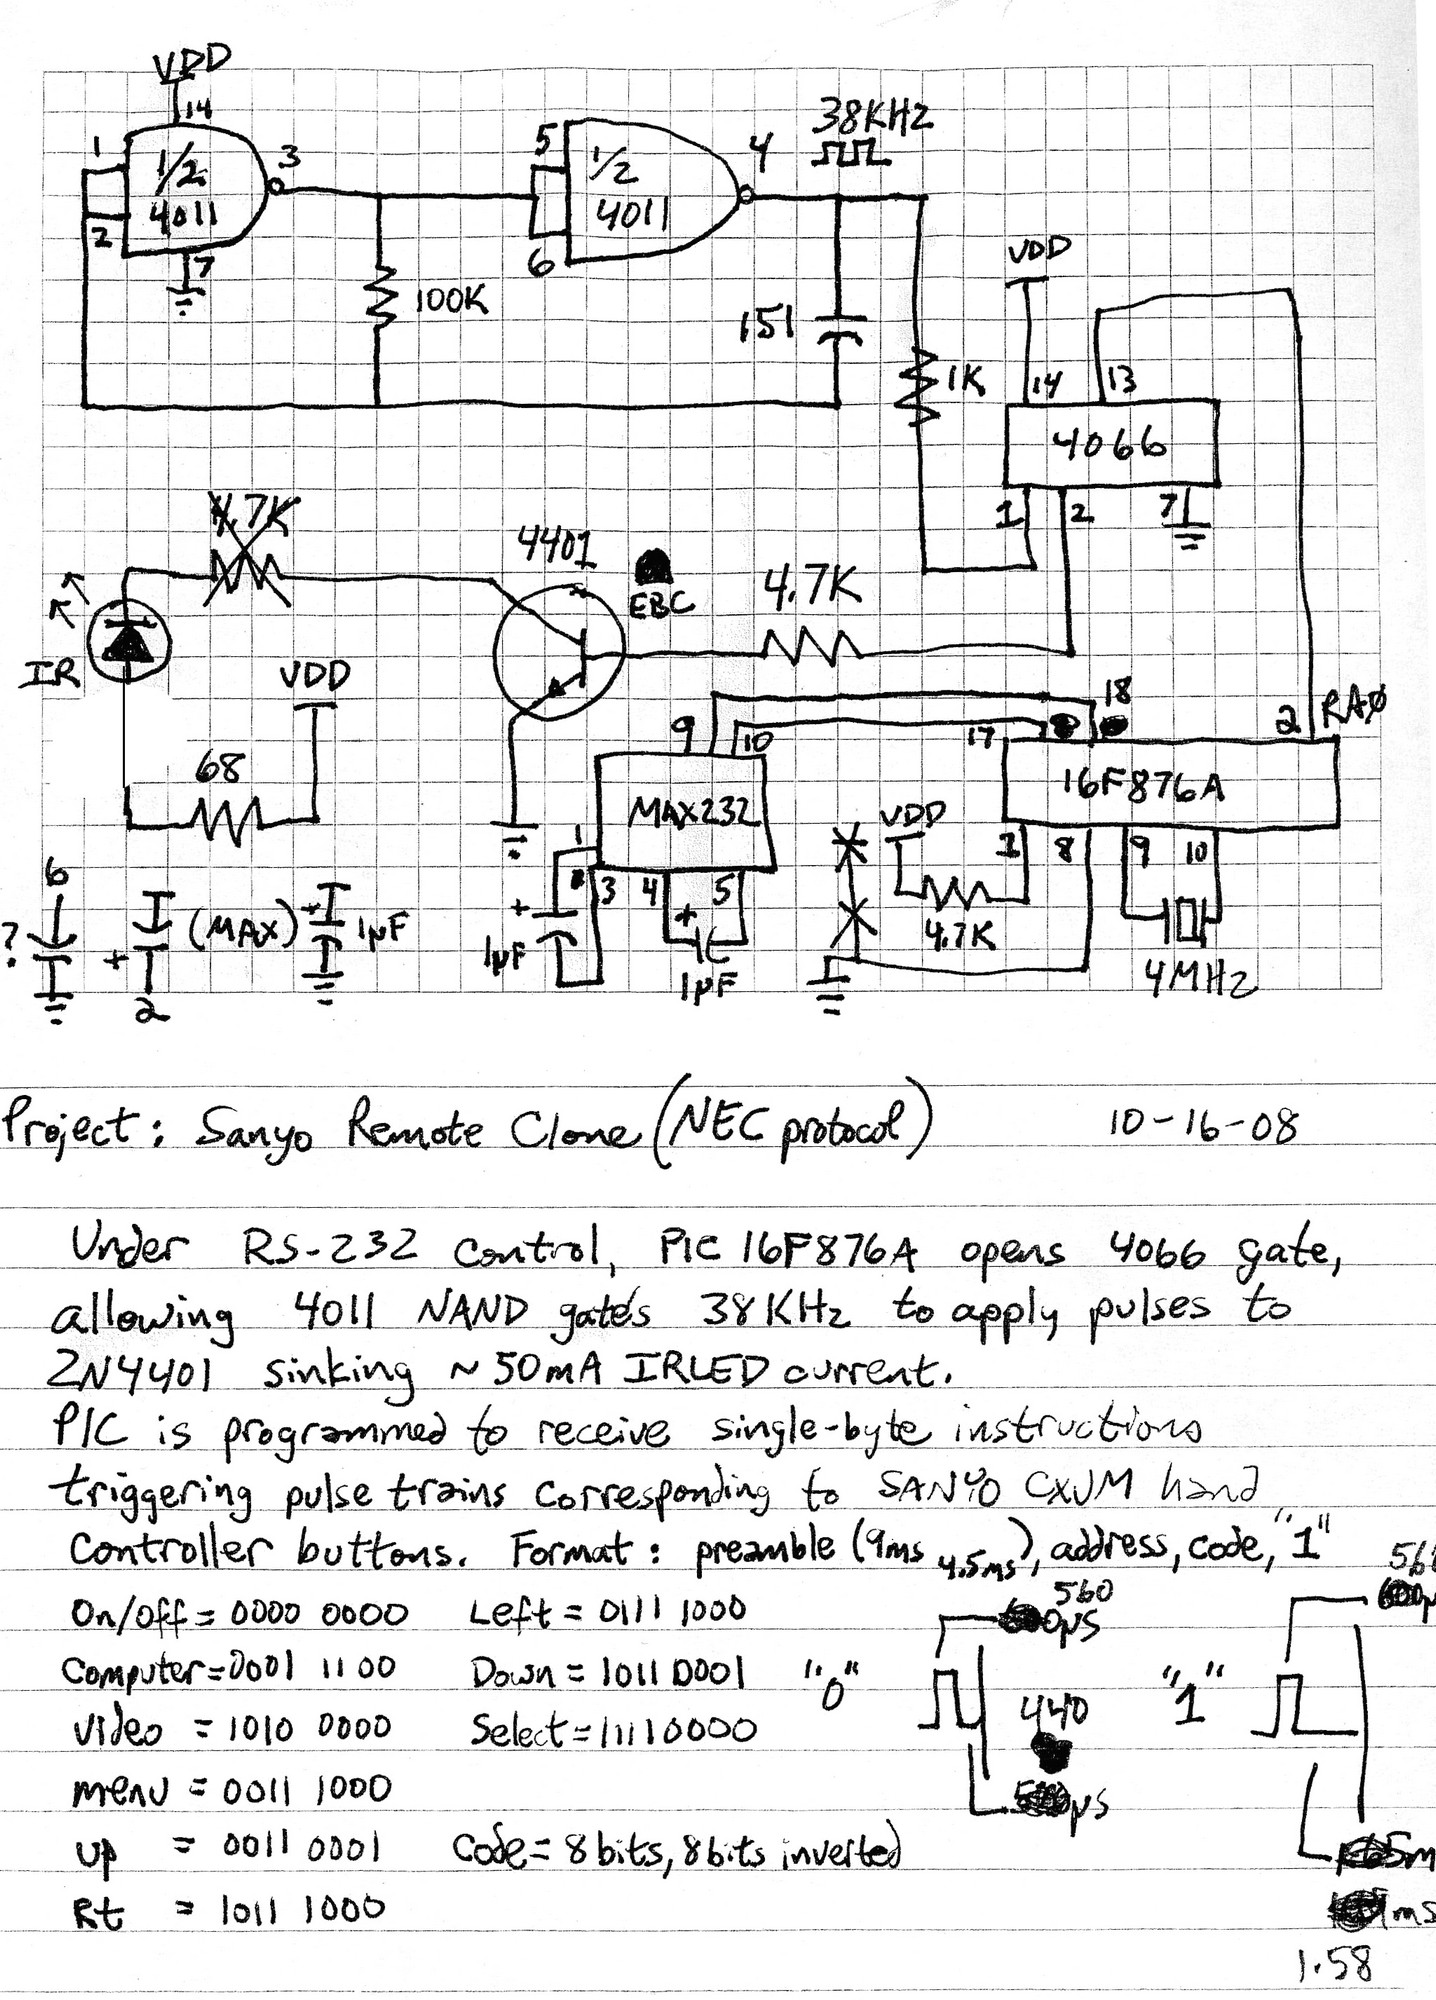 Hampton Bay Air Conditioner IR Remote Control Reverse Engineer - schematic